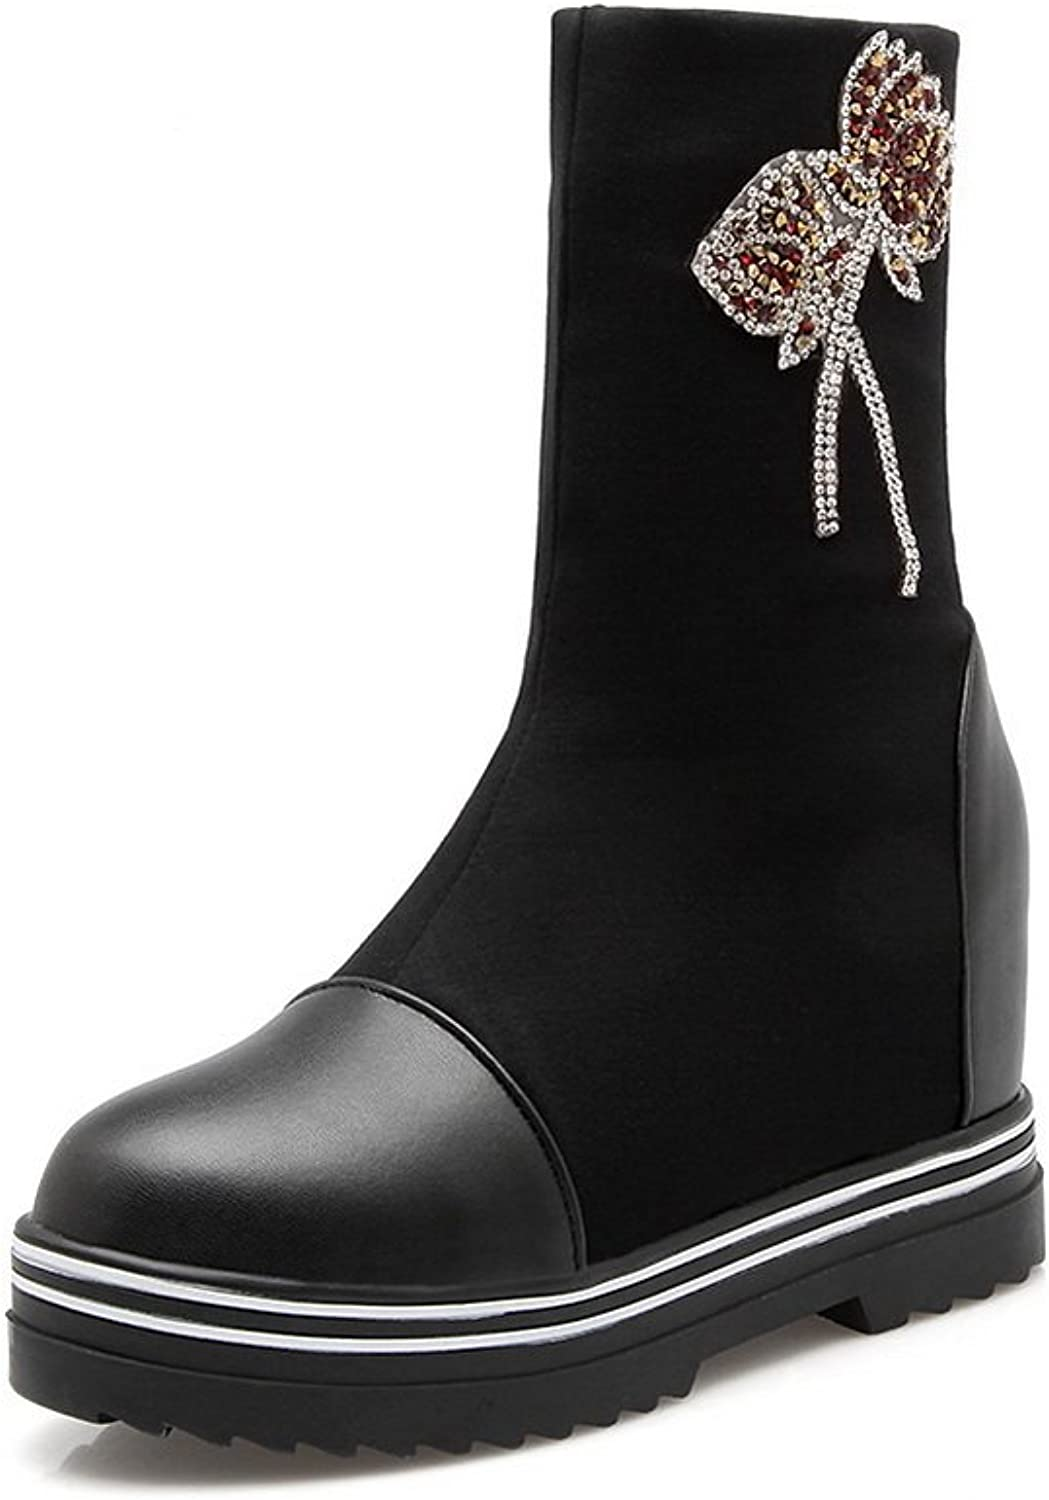 AdeeSu Womens Platform Two-Toned Embroidered Glass Diamond Imitated Leather Boots